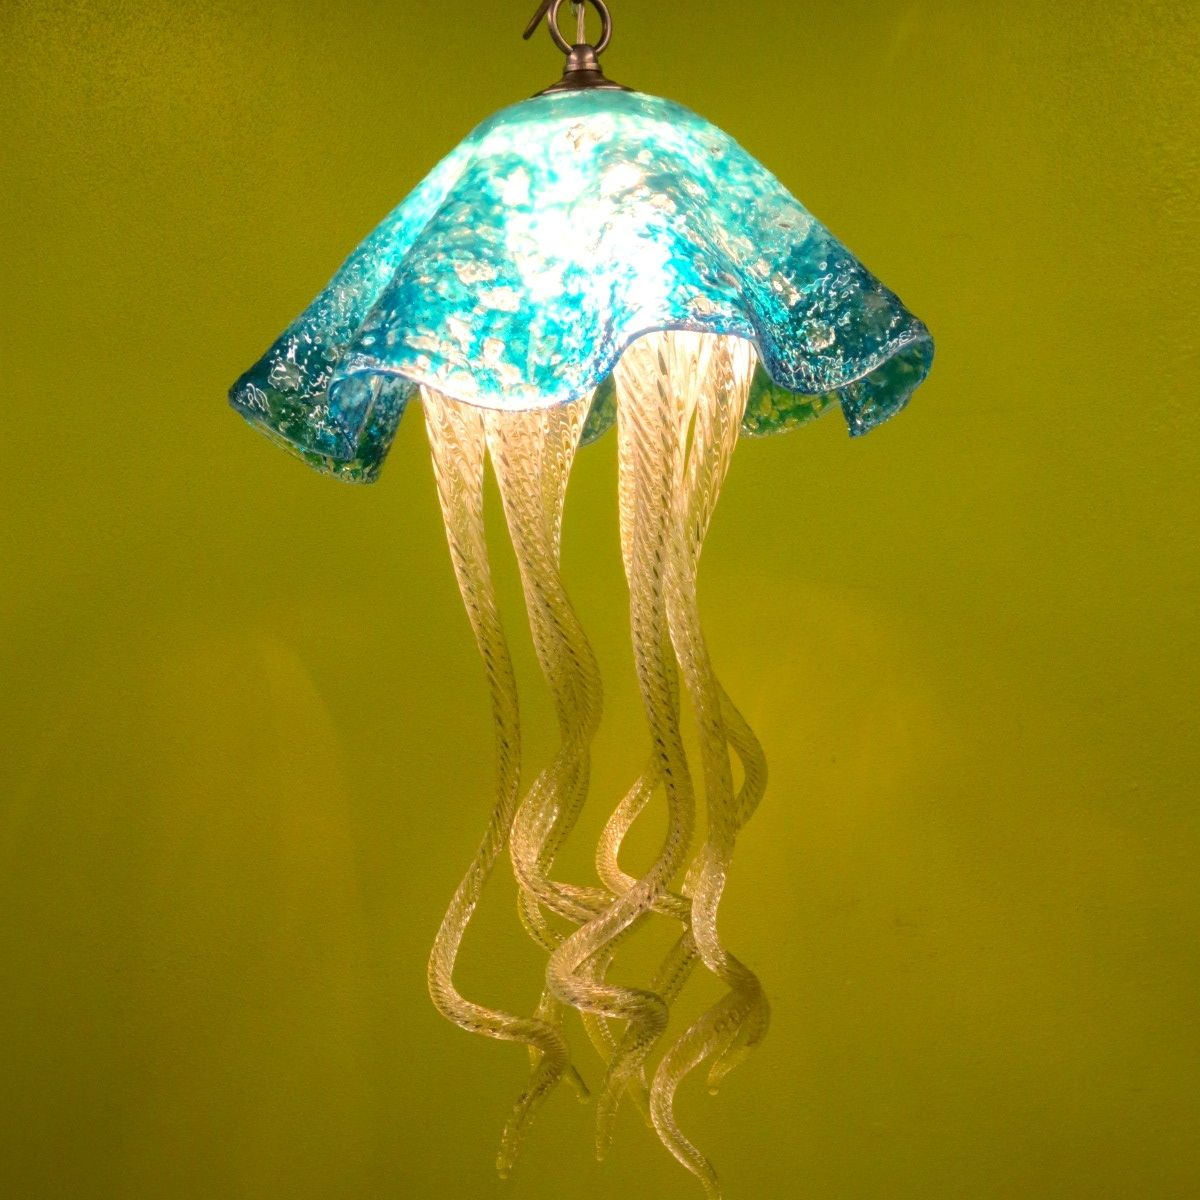 Buy a hand made jellyfish pendant light turquoise for Jellyfish lights